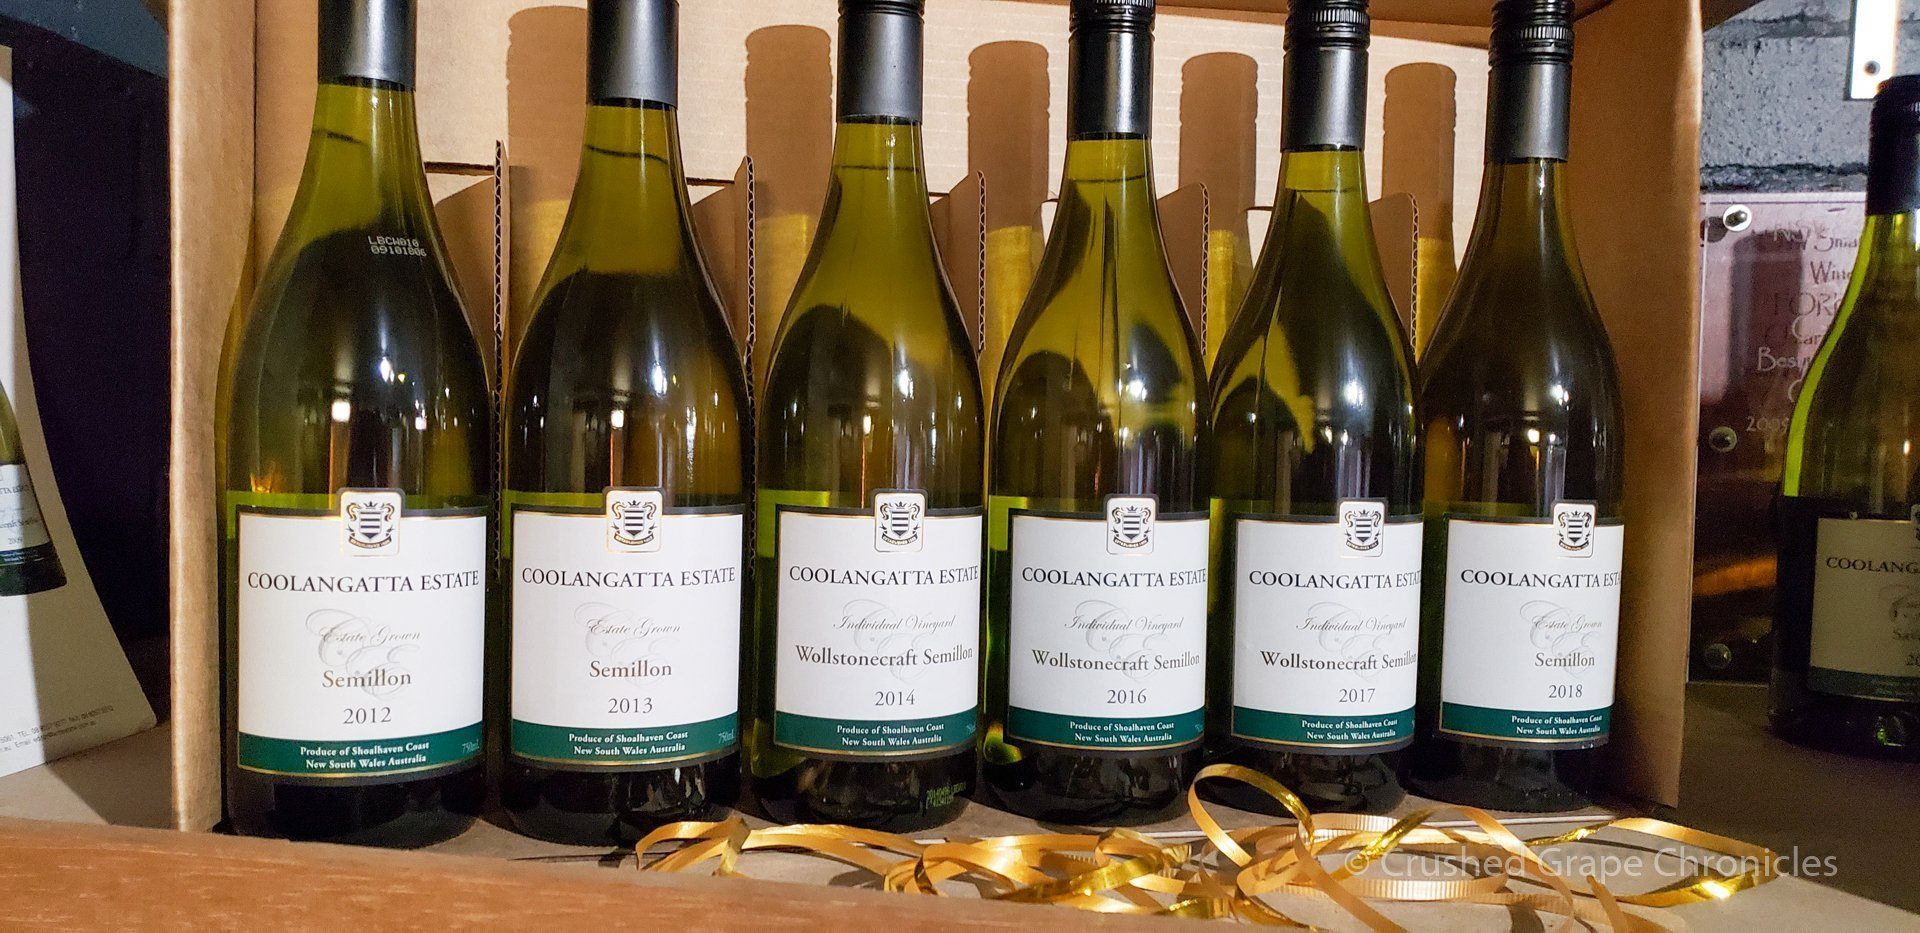 White wines at Coolangatta Estate New South Wales Australia